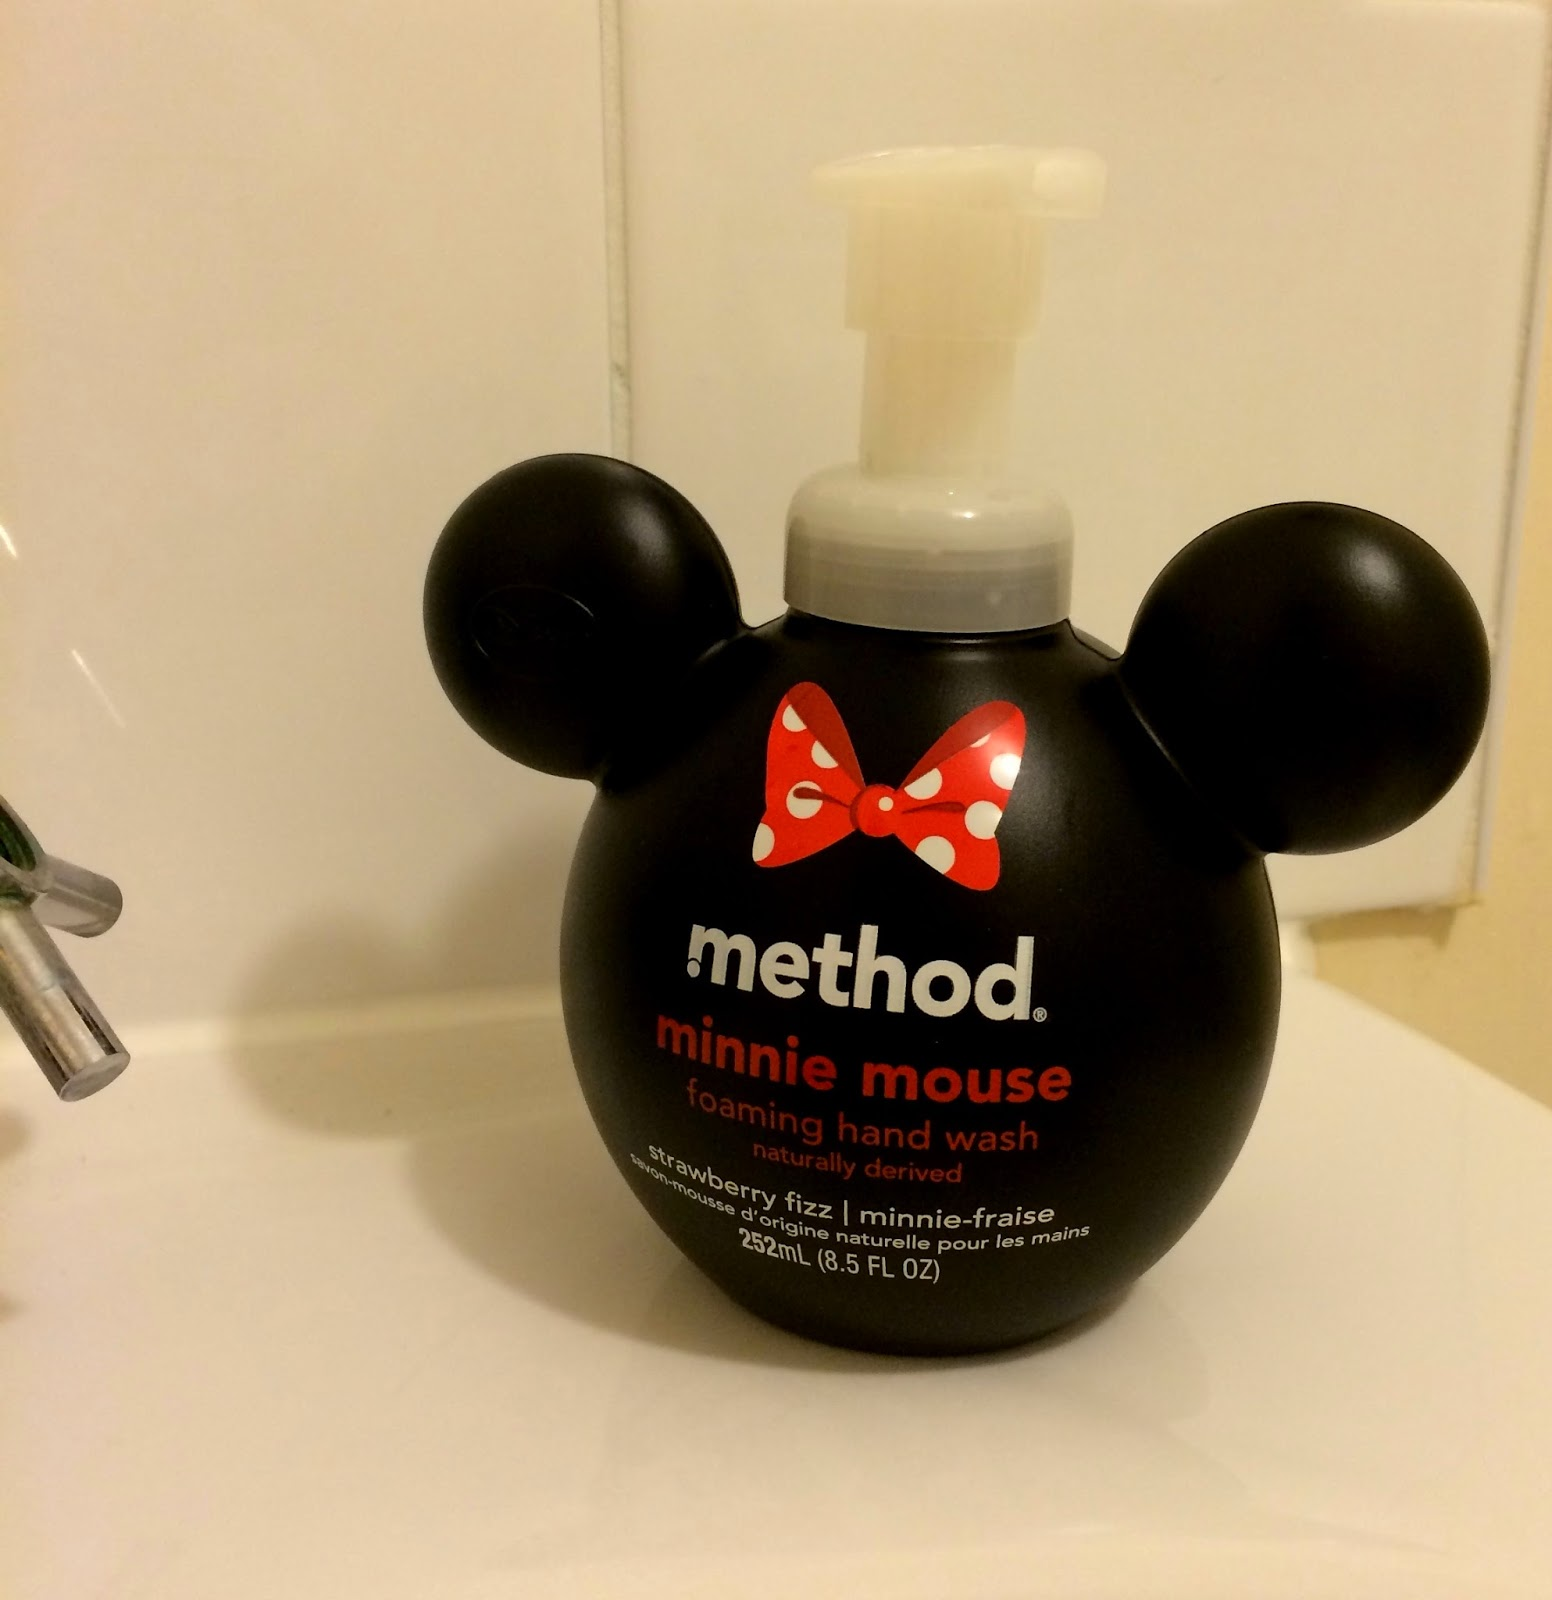 method-whistle-while-you-wash--hand-wash-minnie-mouse